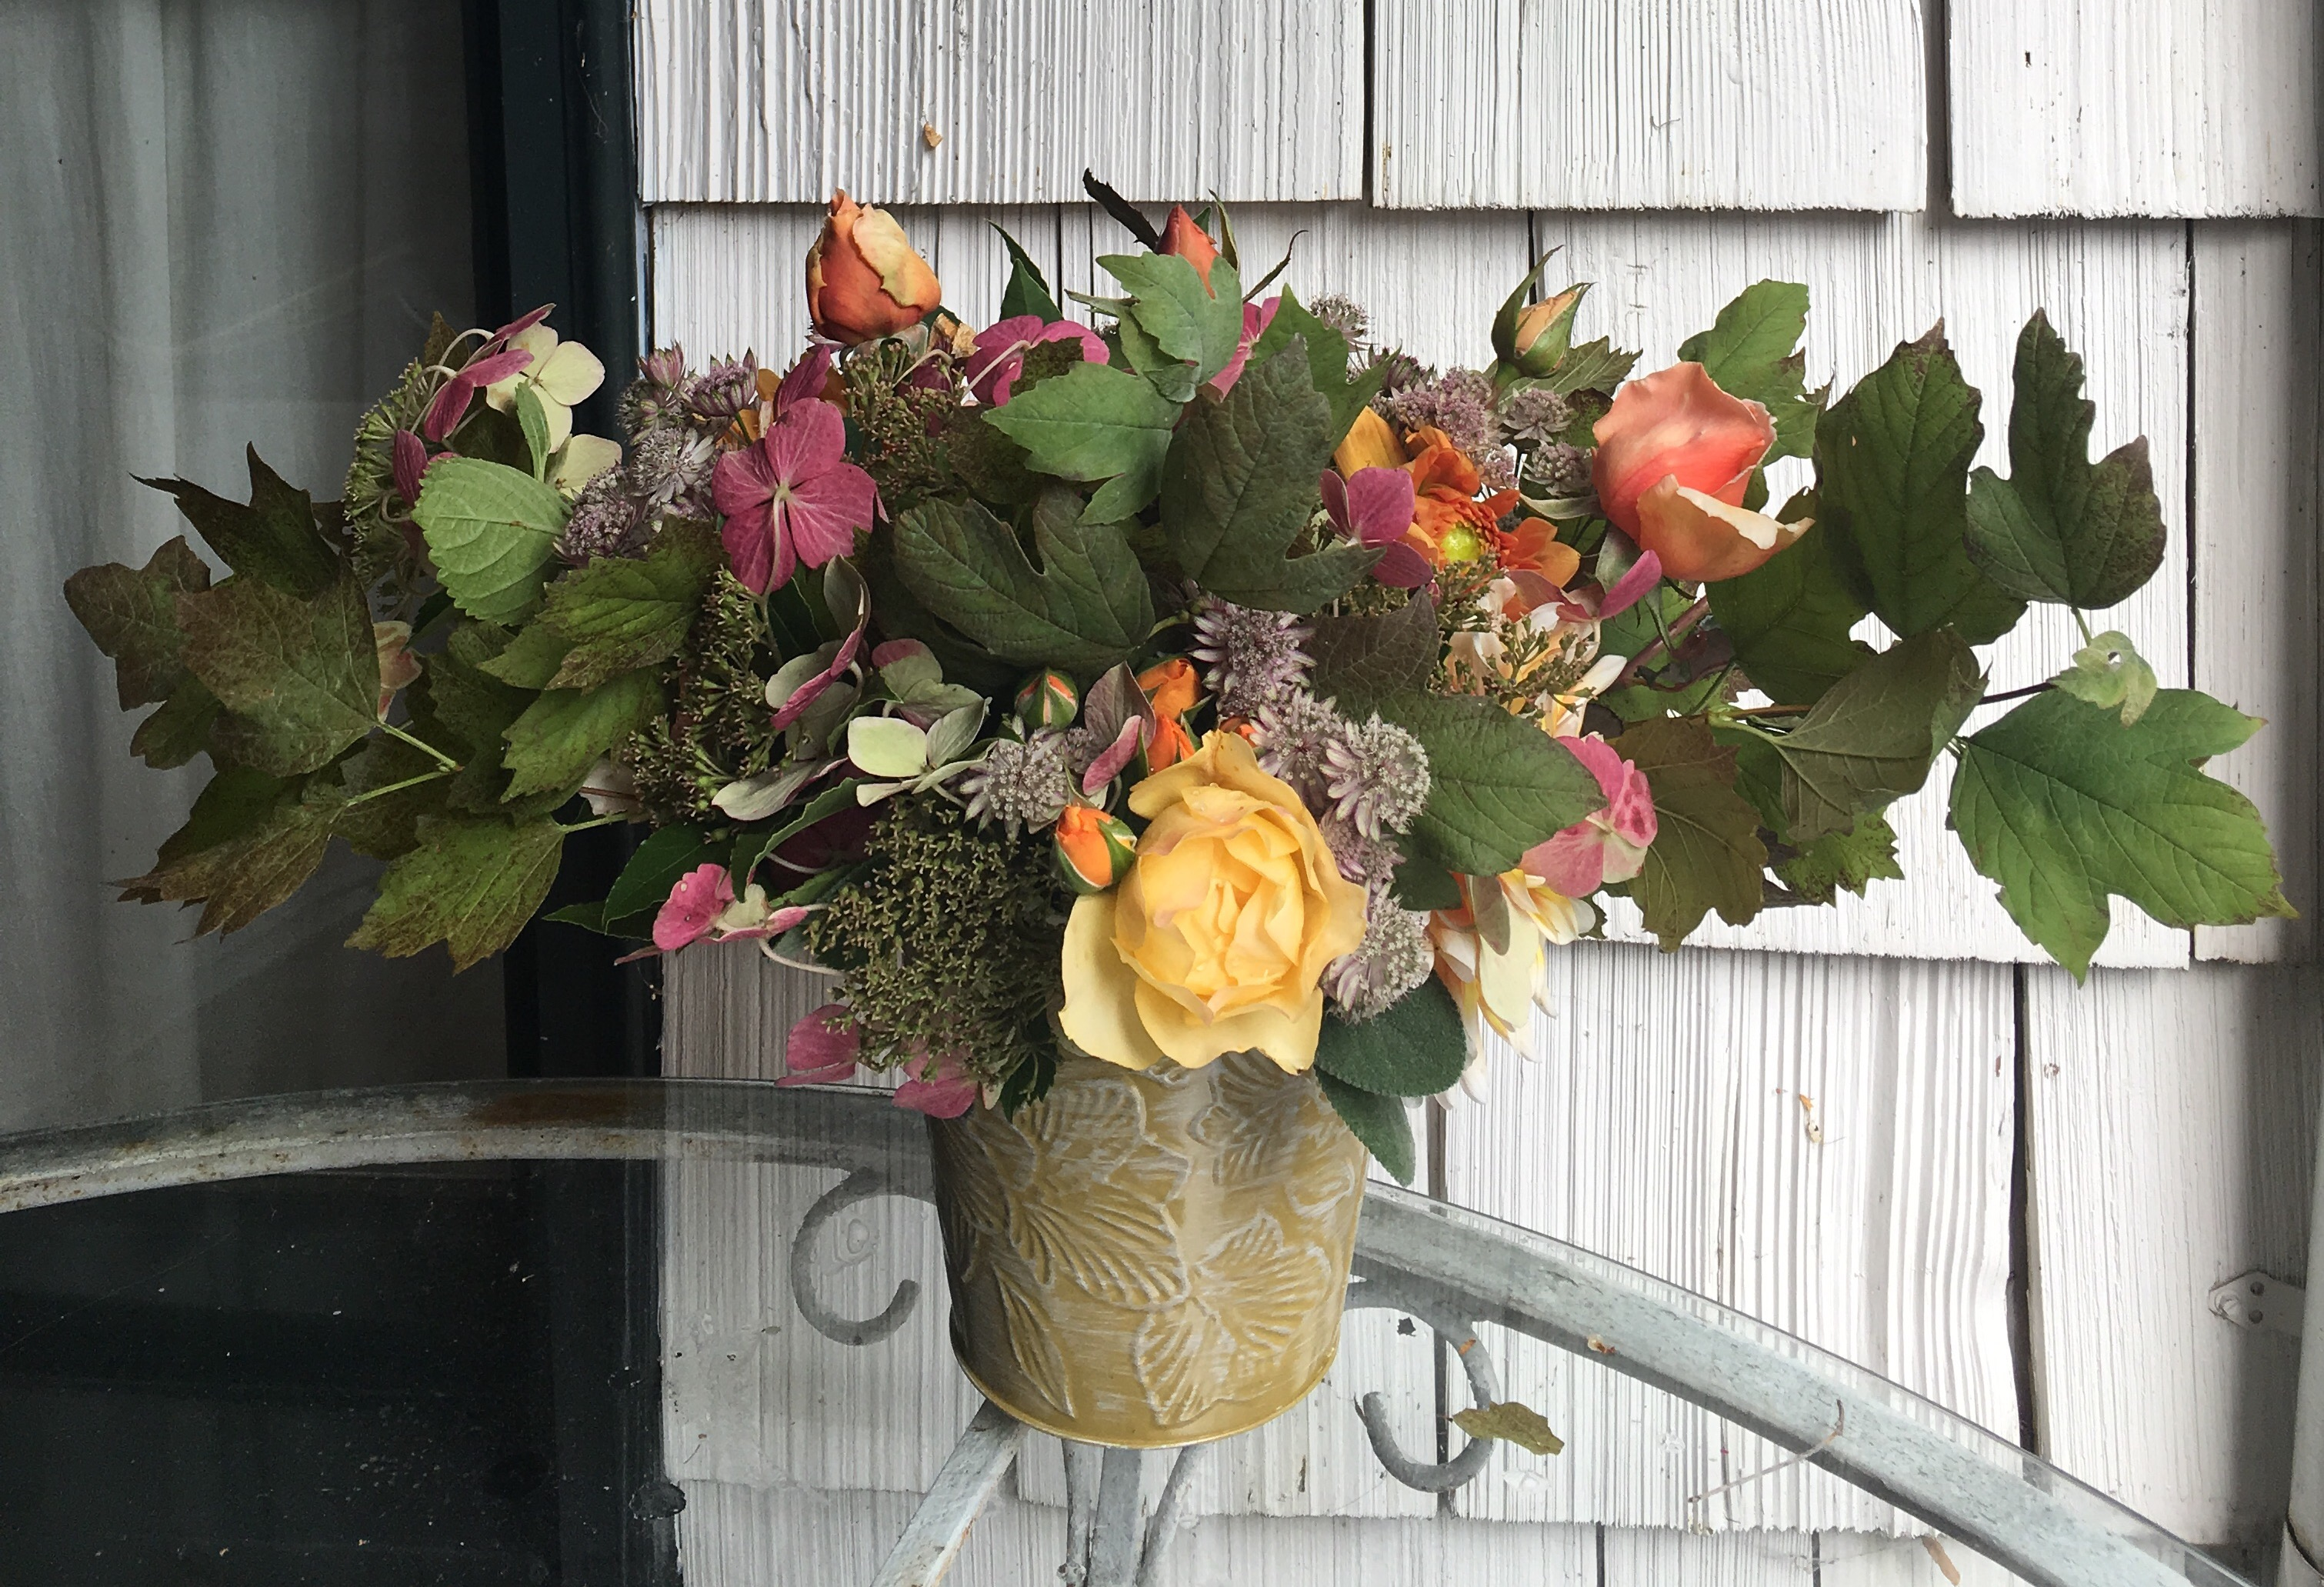 Fall bouquet, step 2: adding flowers astrantia, lacecap hydrangeas, dahlias, yellow and apricot roses.